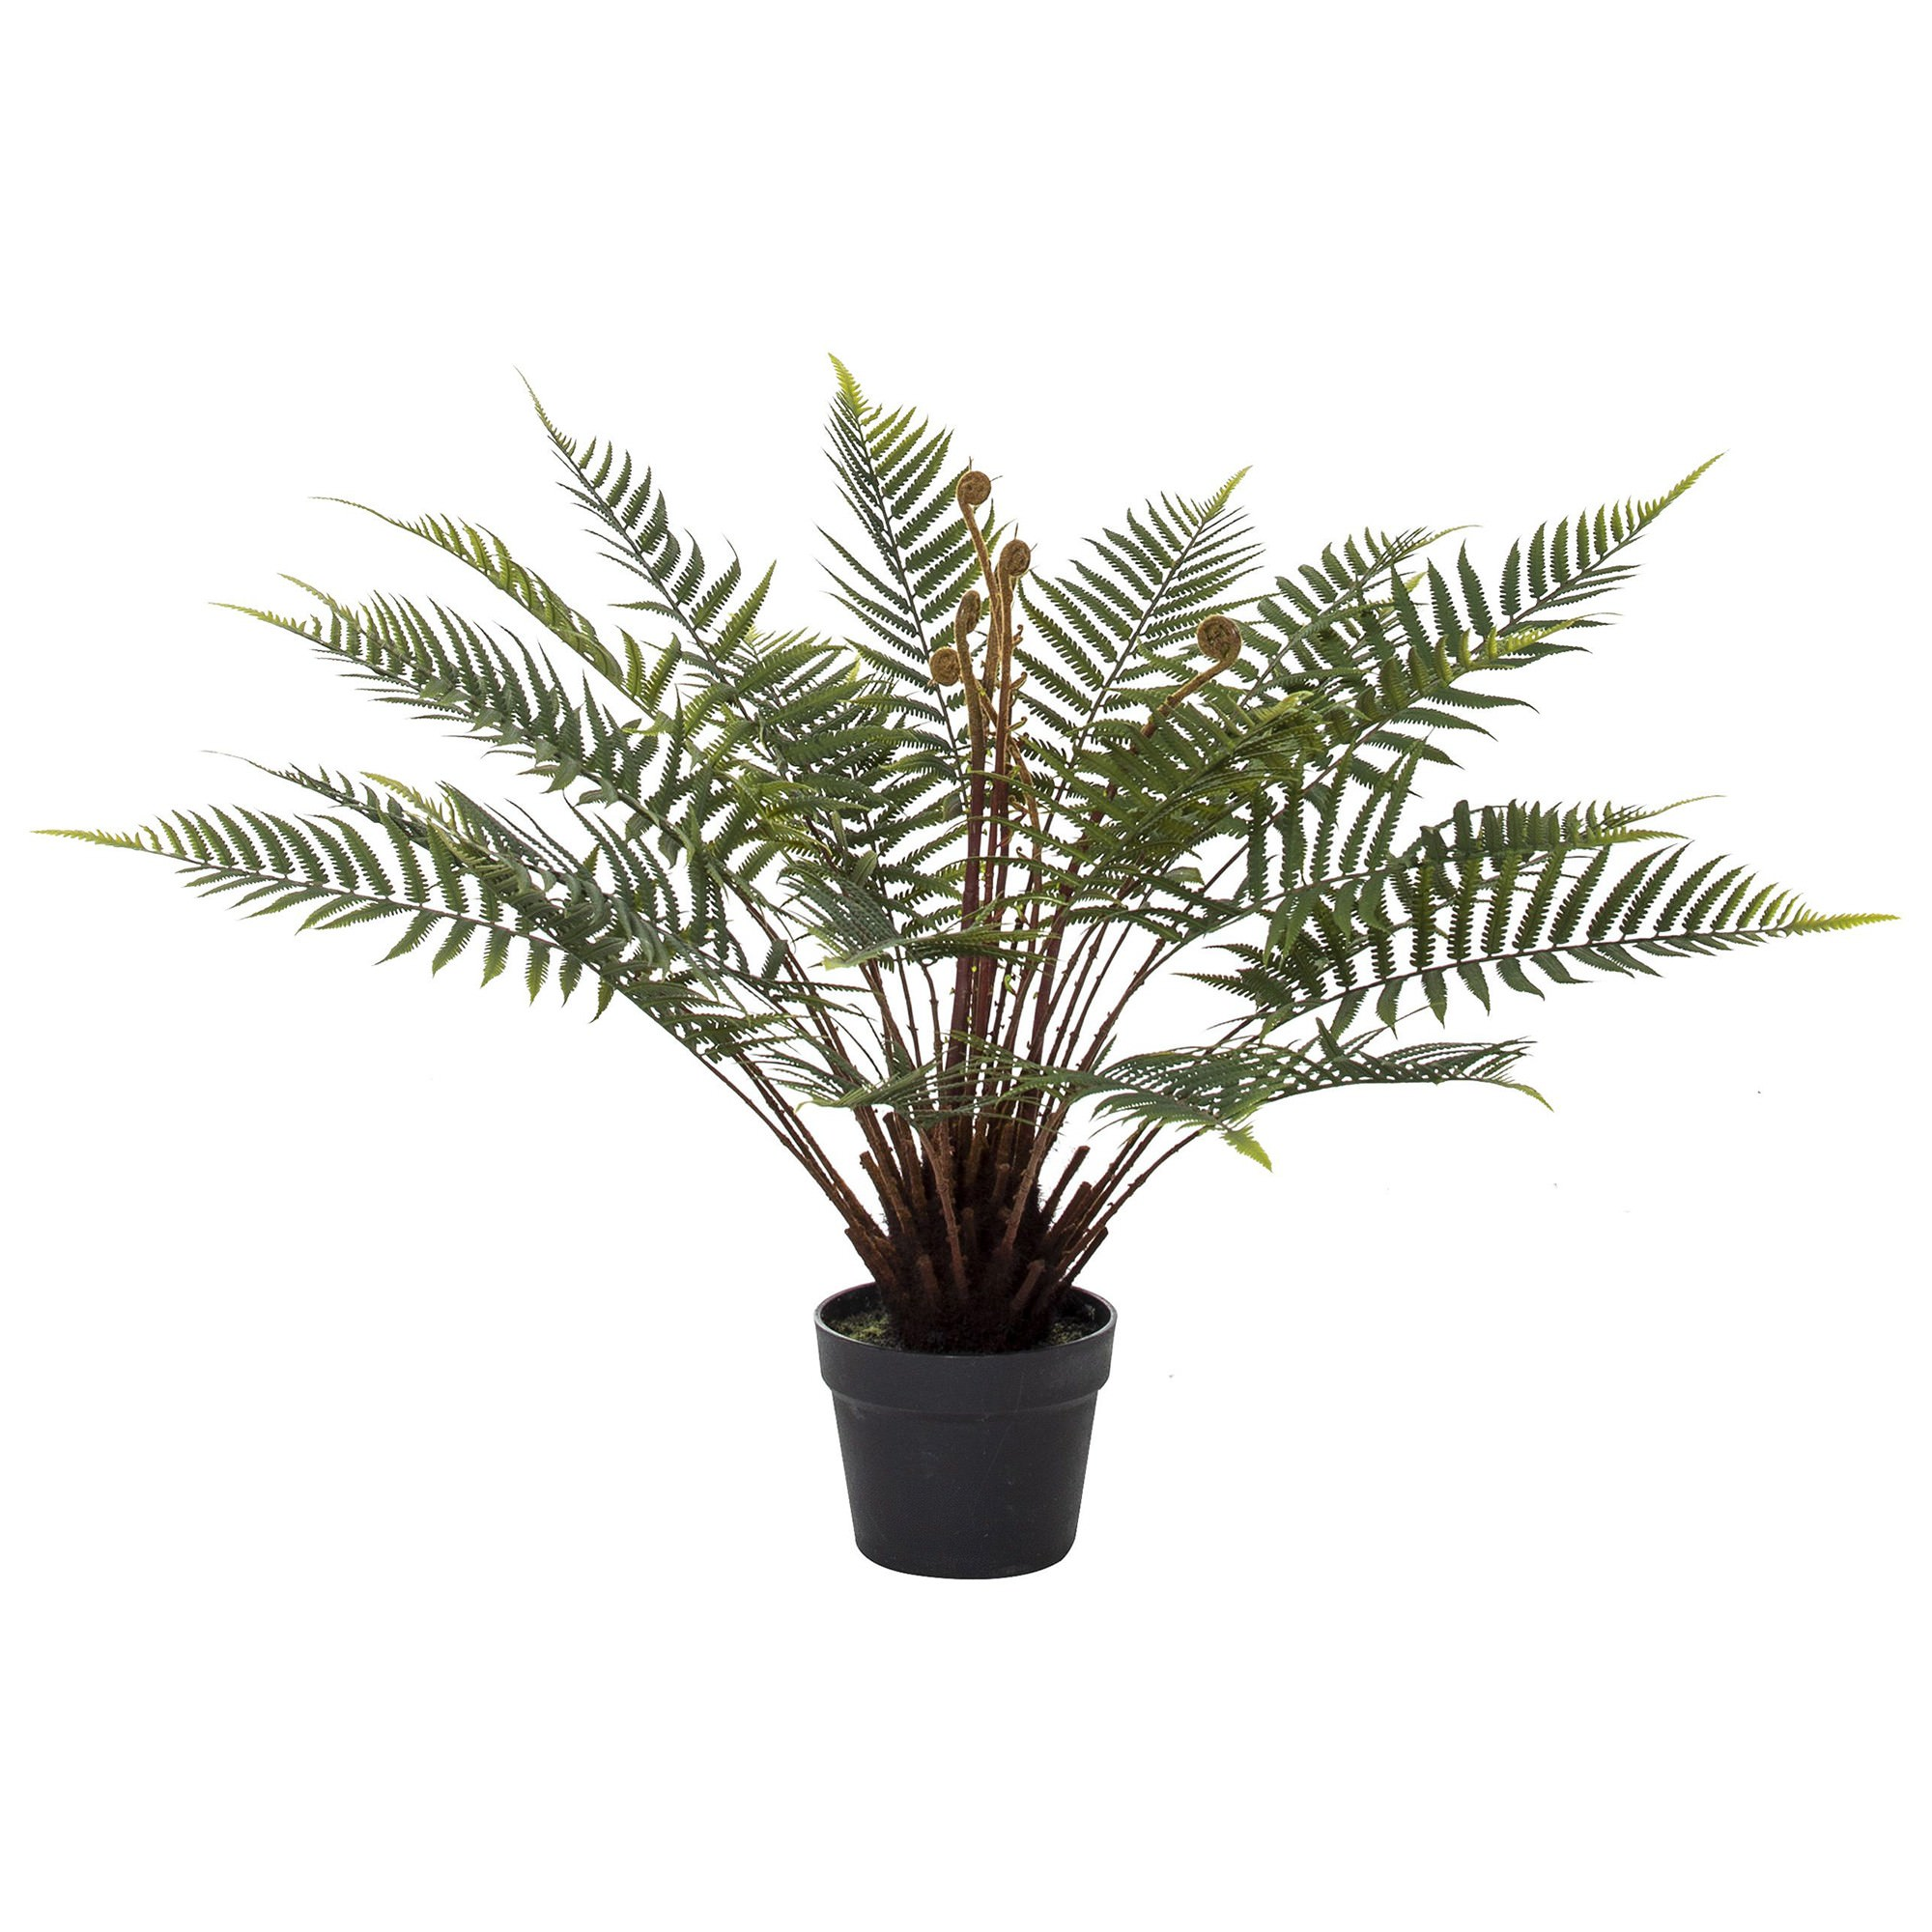 Potted Artificial Sword Fern, 66cm